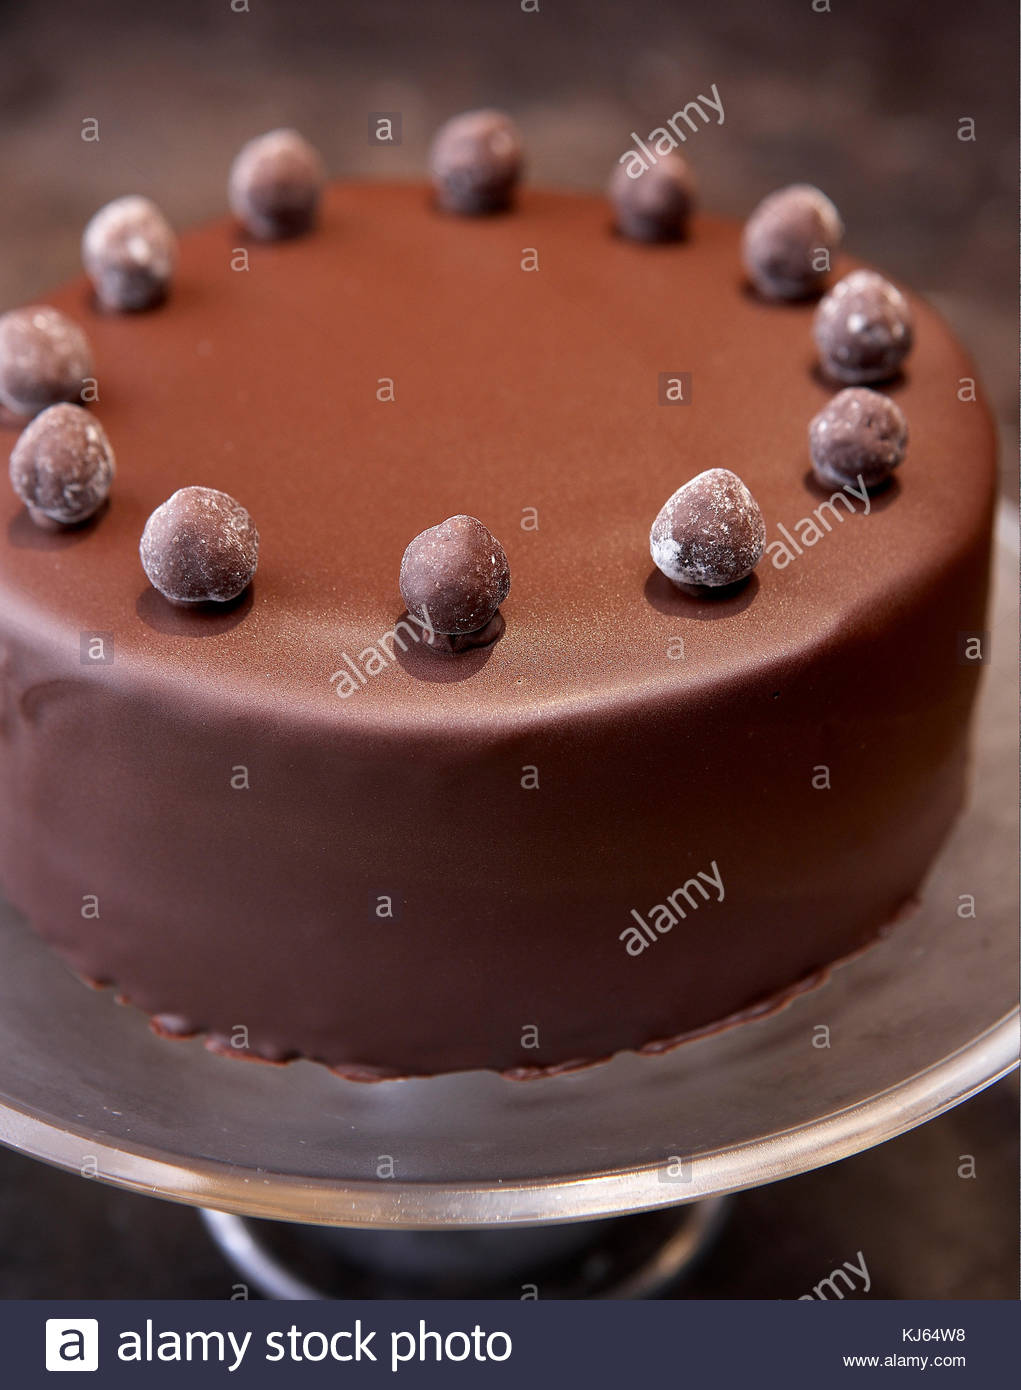 Dessert cake chocolate - Stock Image